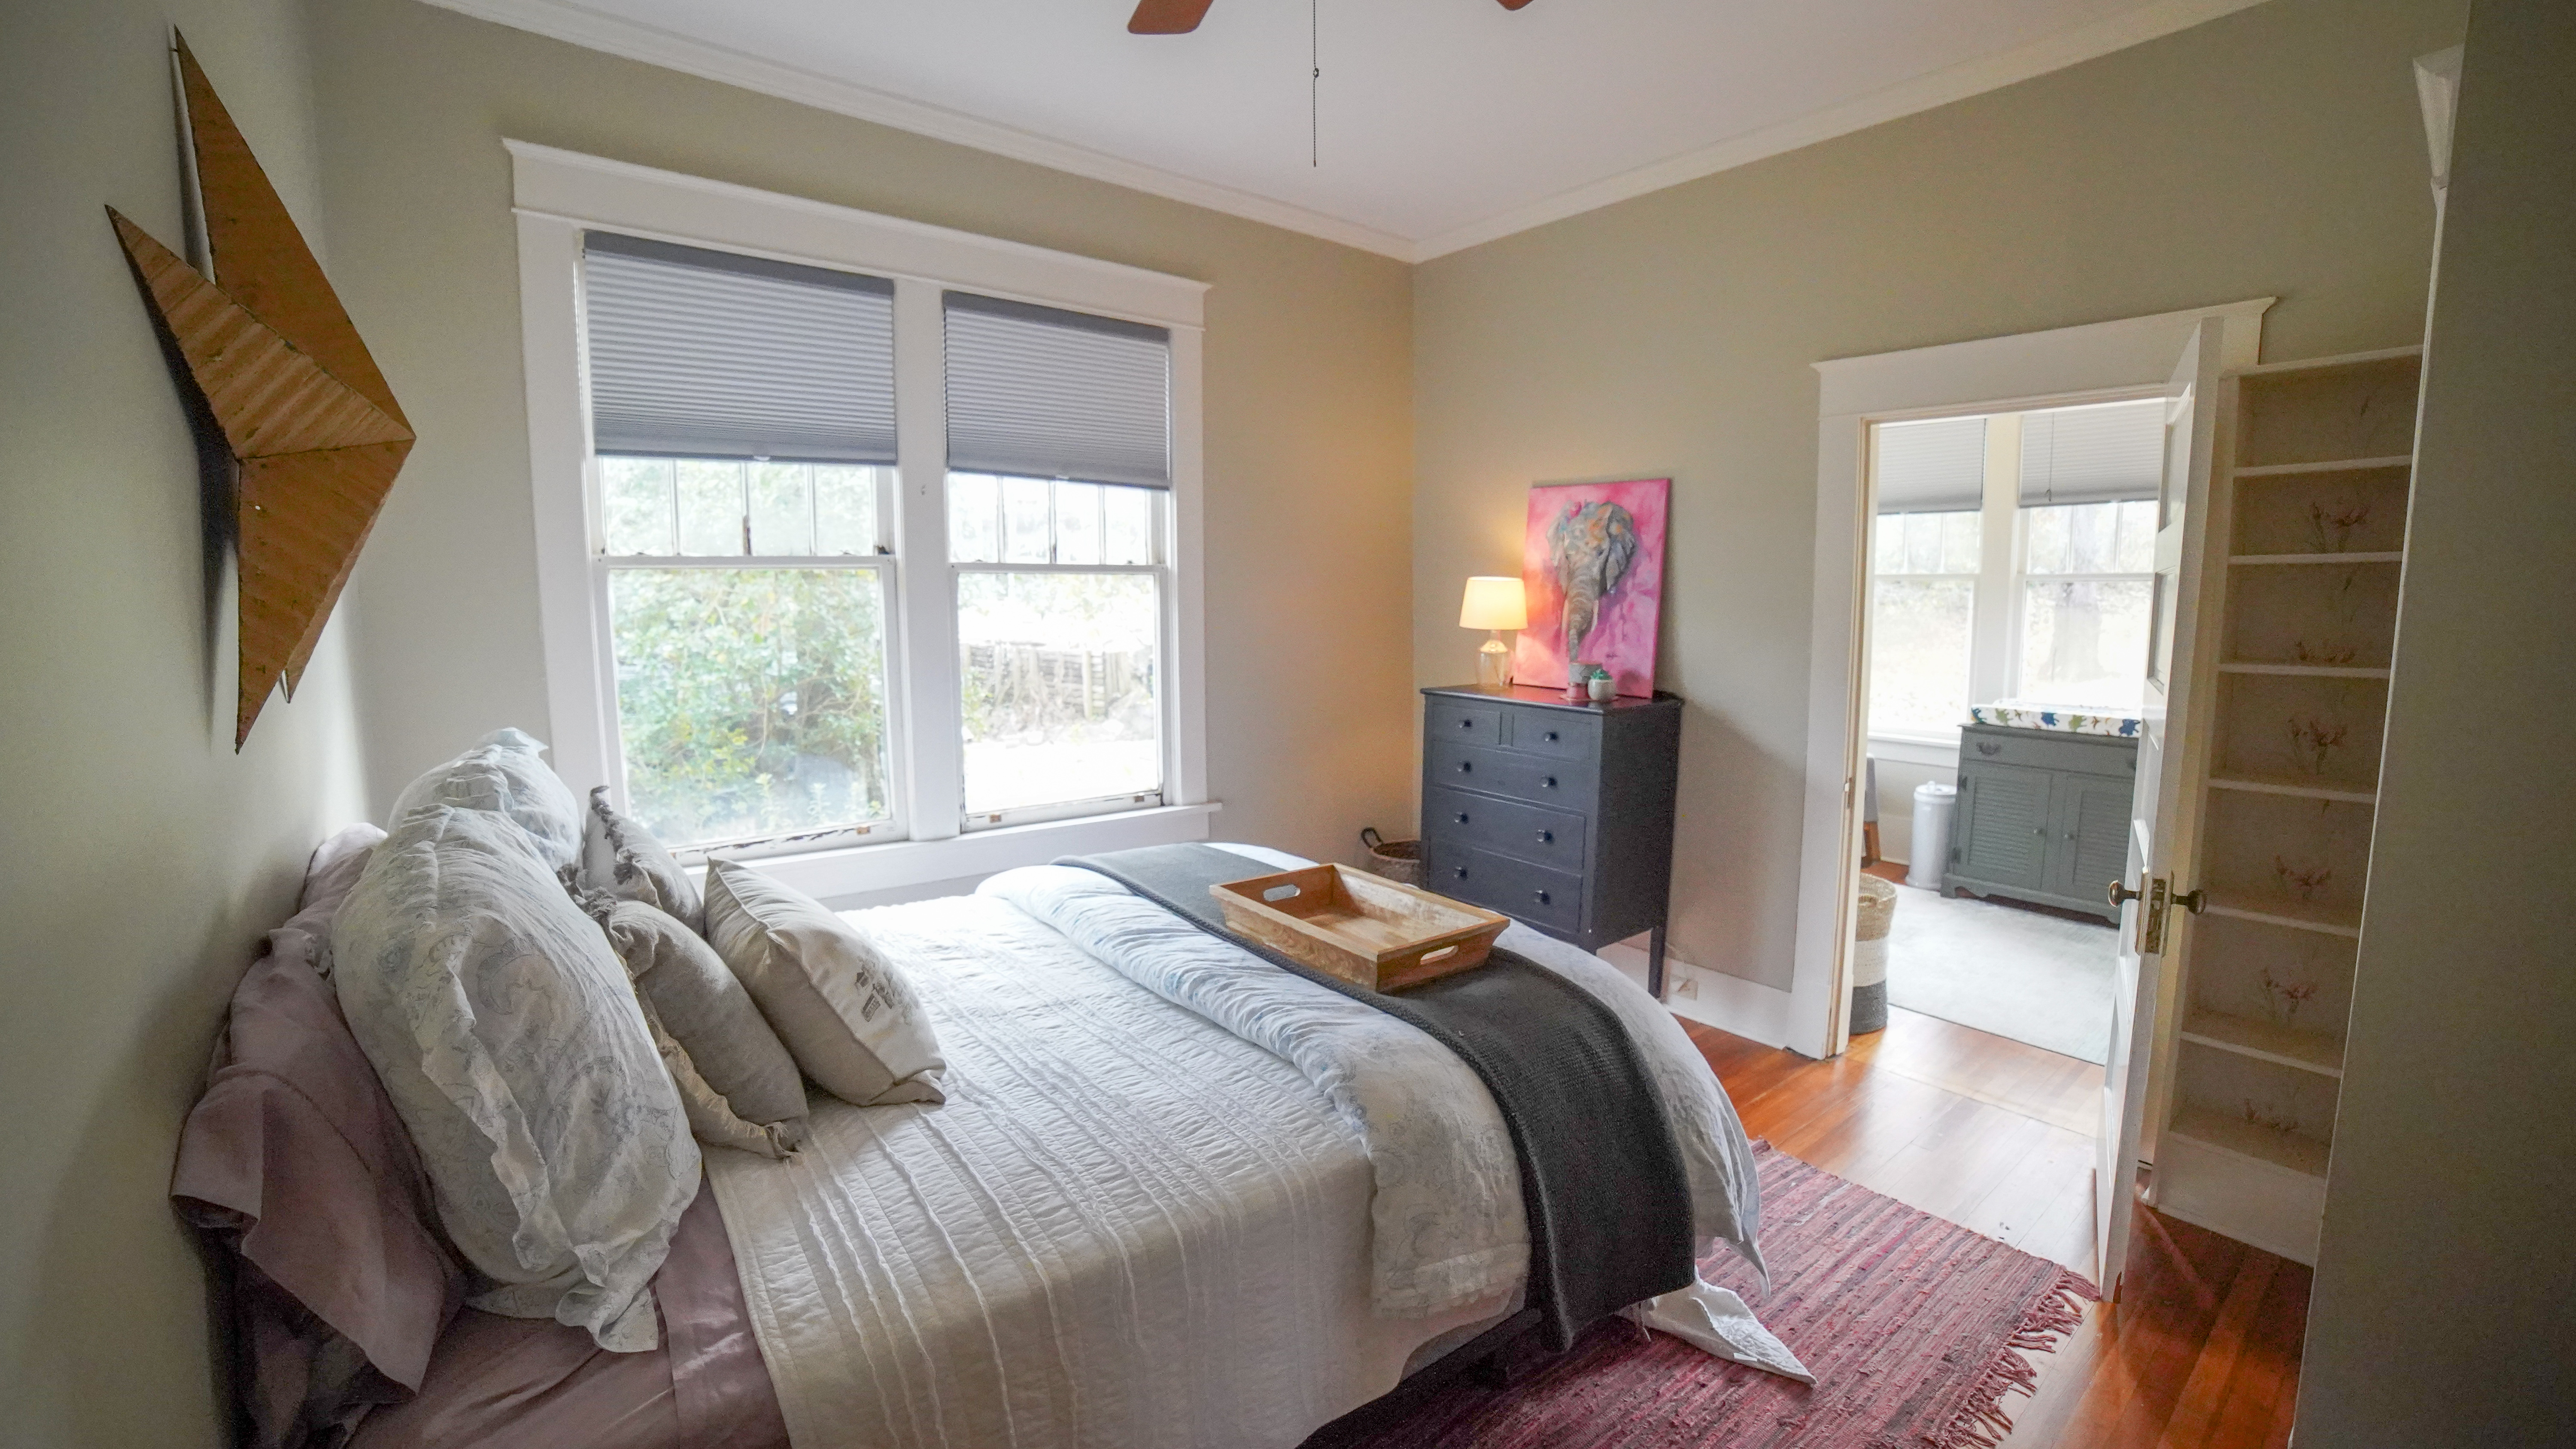 Hgtv Home Town Ms House For Sale Photos Apartment Therapy